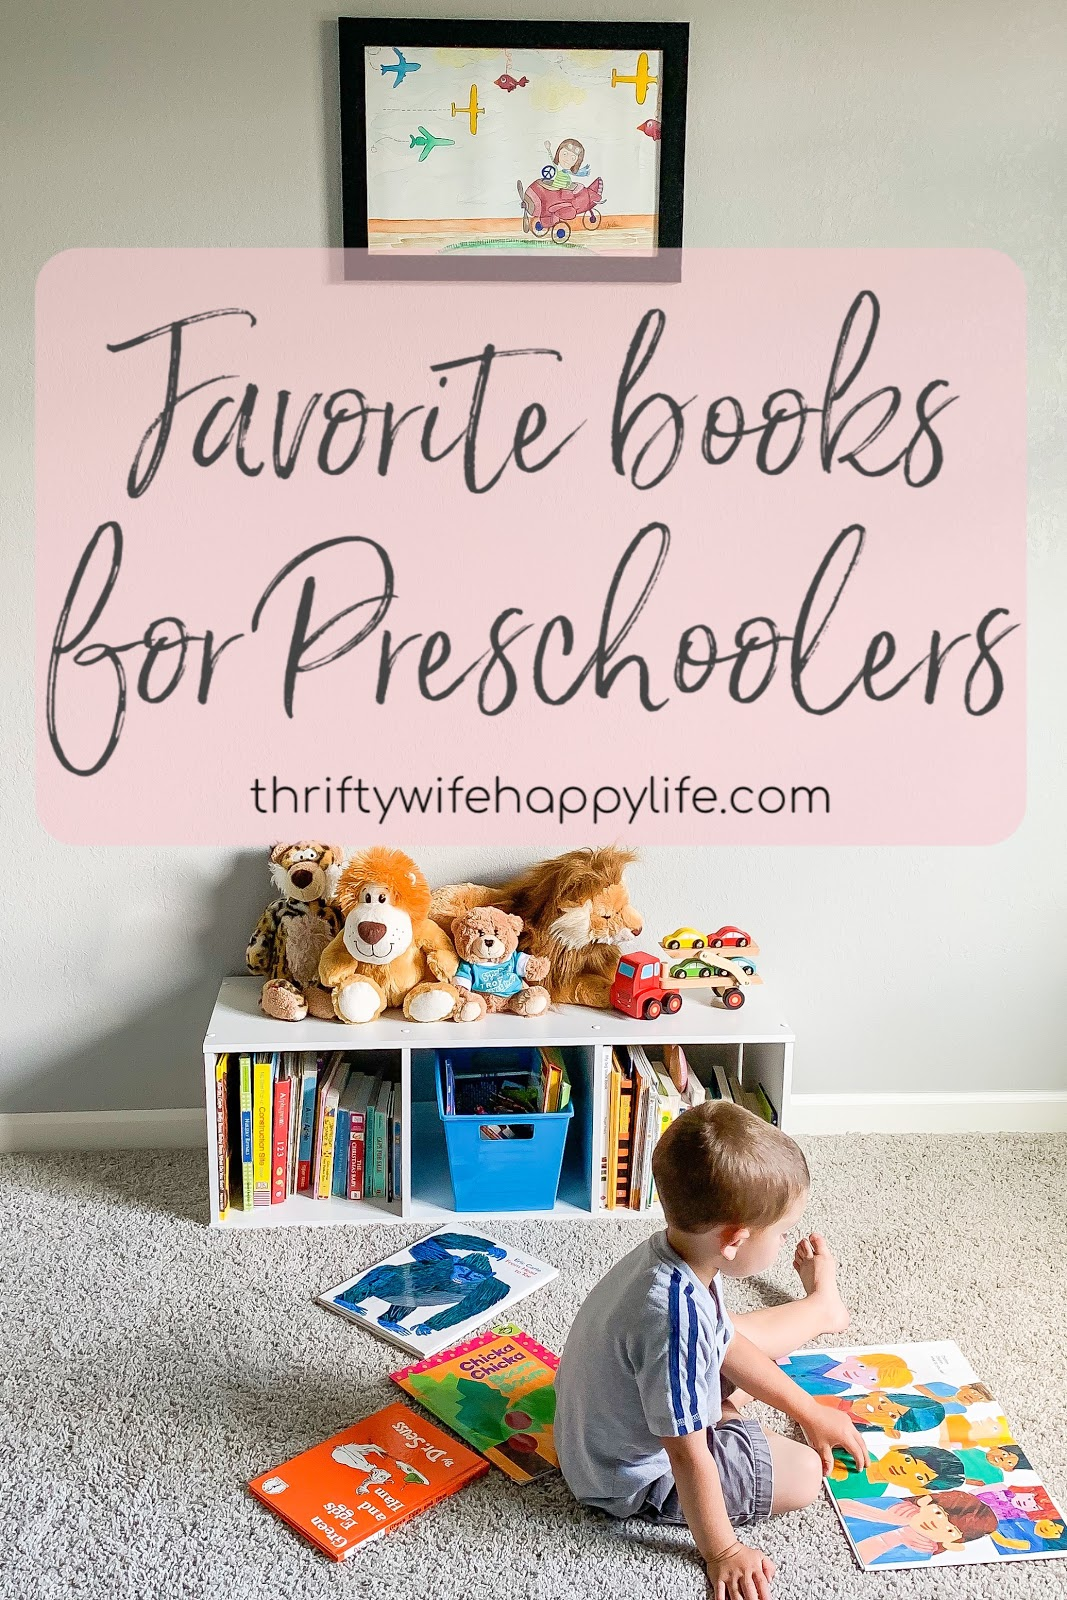 10 favorite books for preschoolers